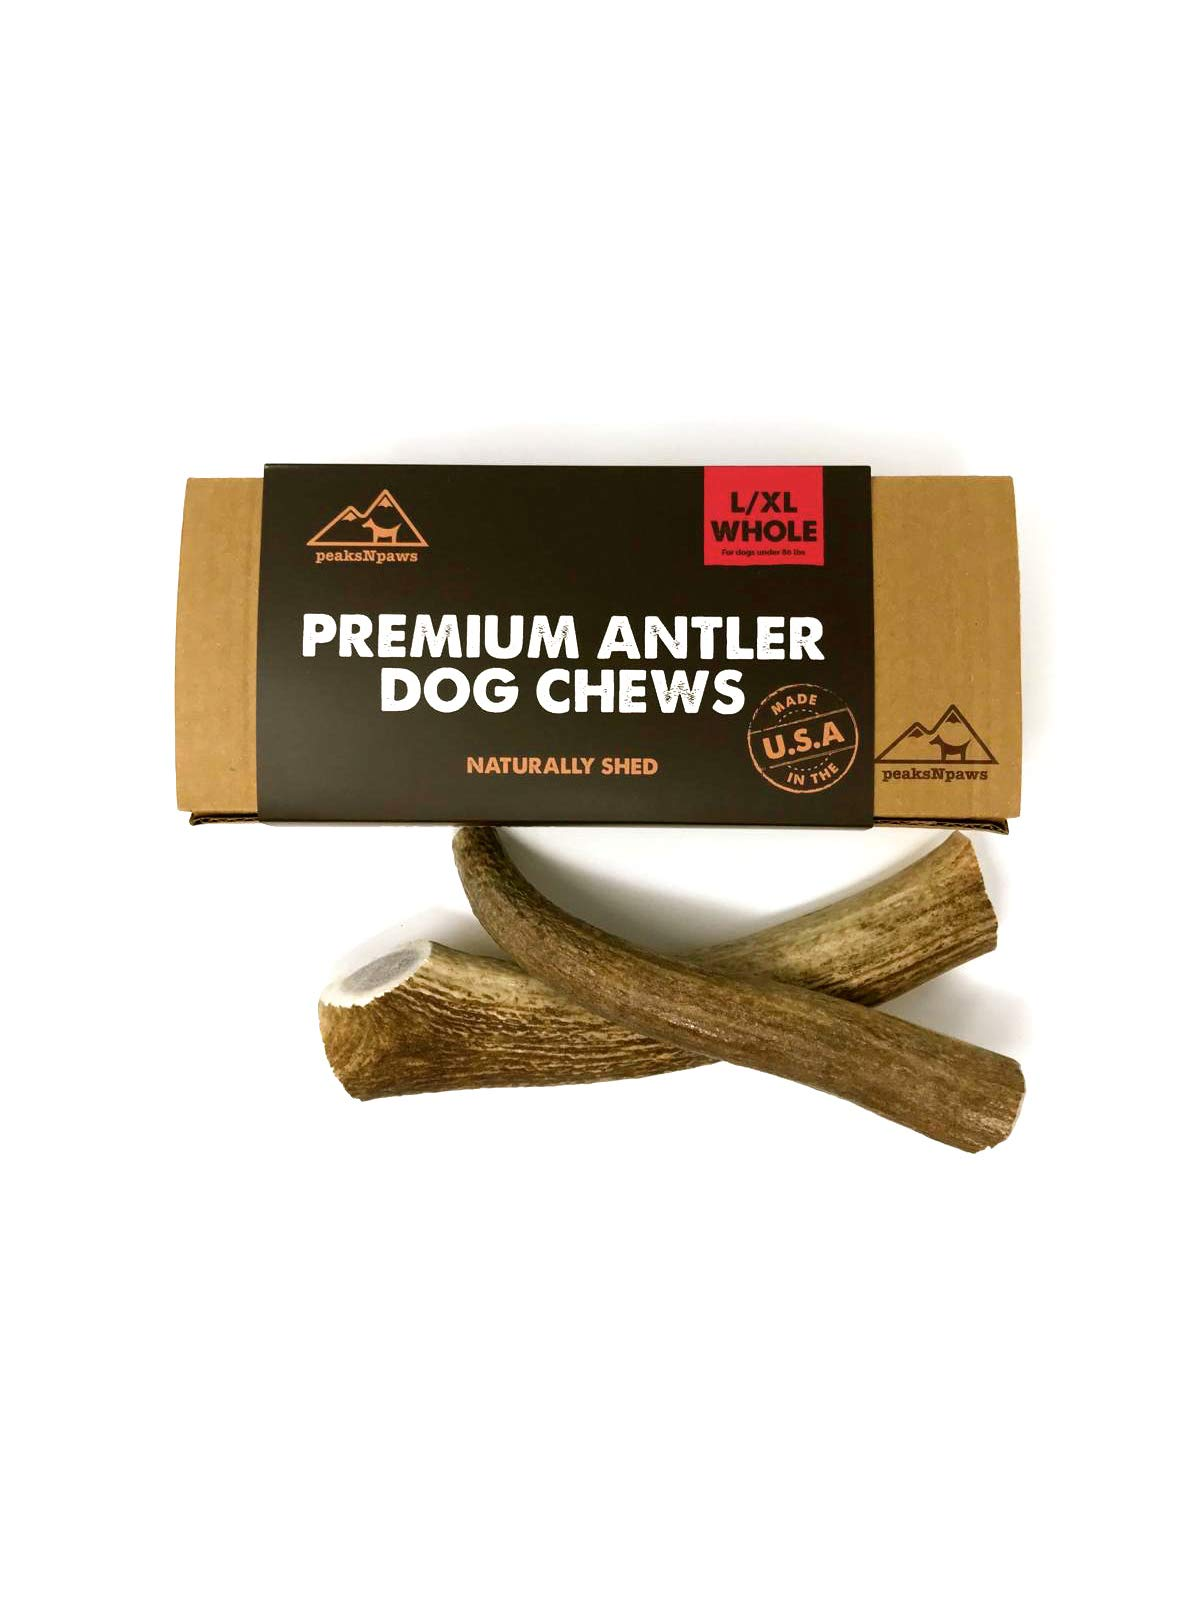 peaksNpaws Premium All-Natural Grade A Whole Elk Antlers for Dogs - Naturally Shed in The Rocky Mountains - No Additives, No Preservatives - Healthy and Delicious Treat - Made in USA